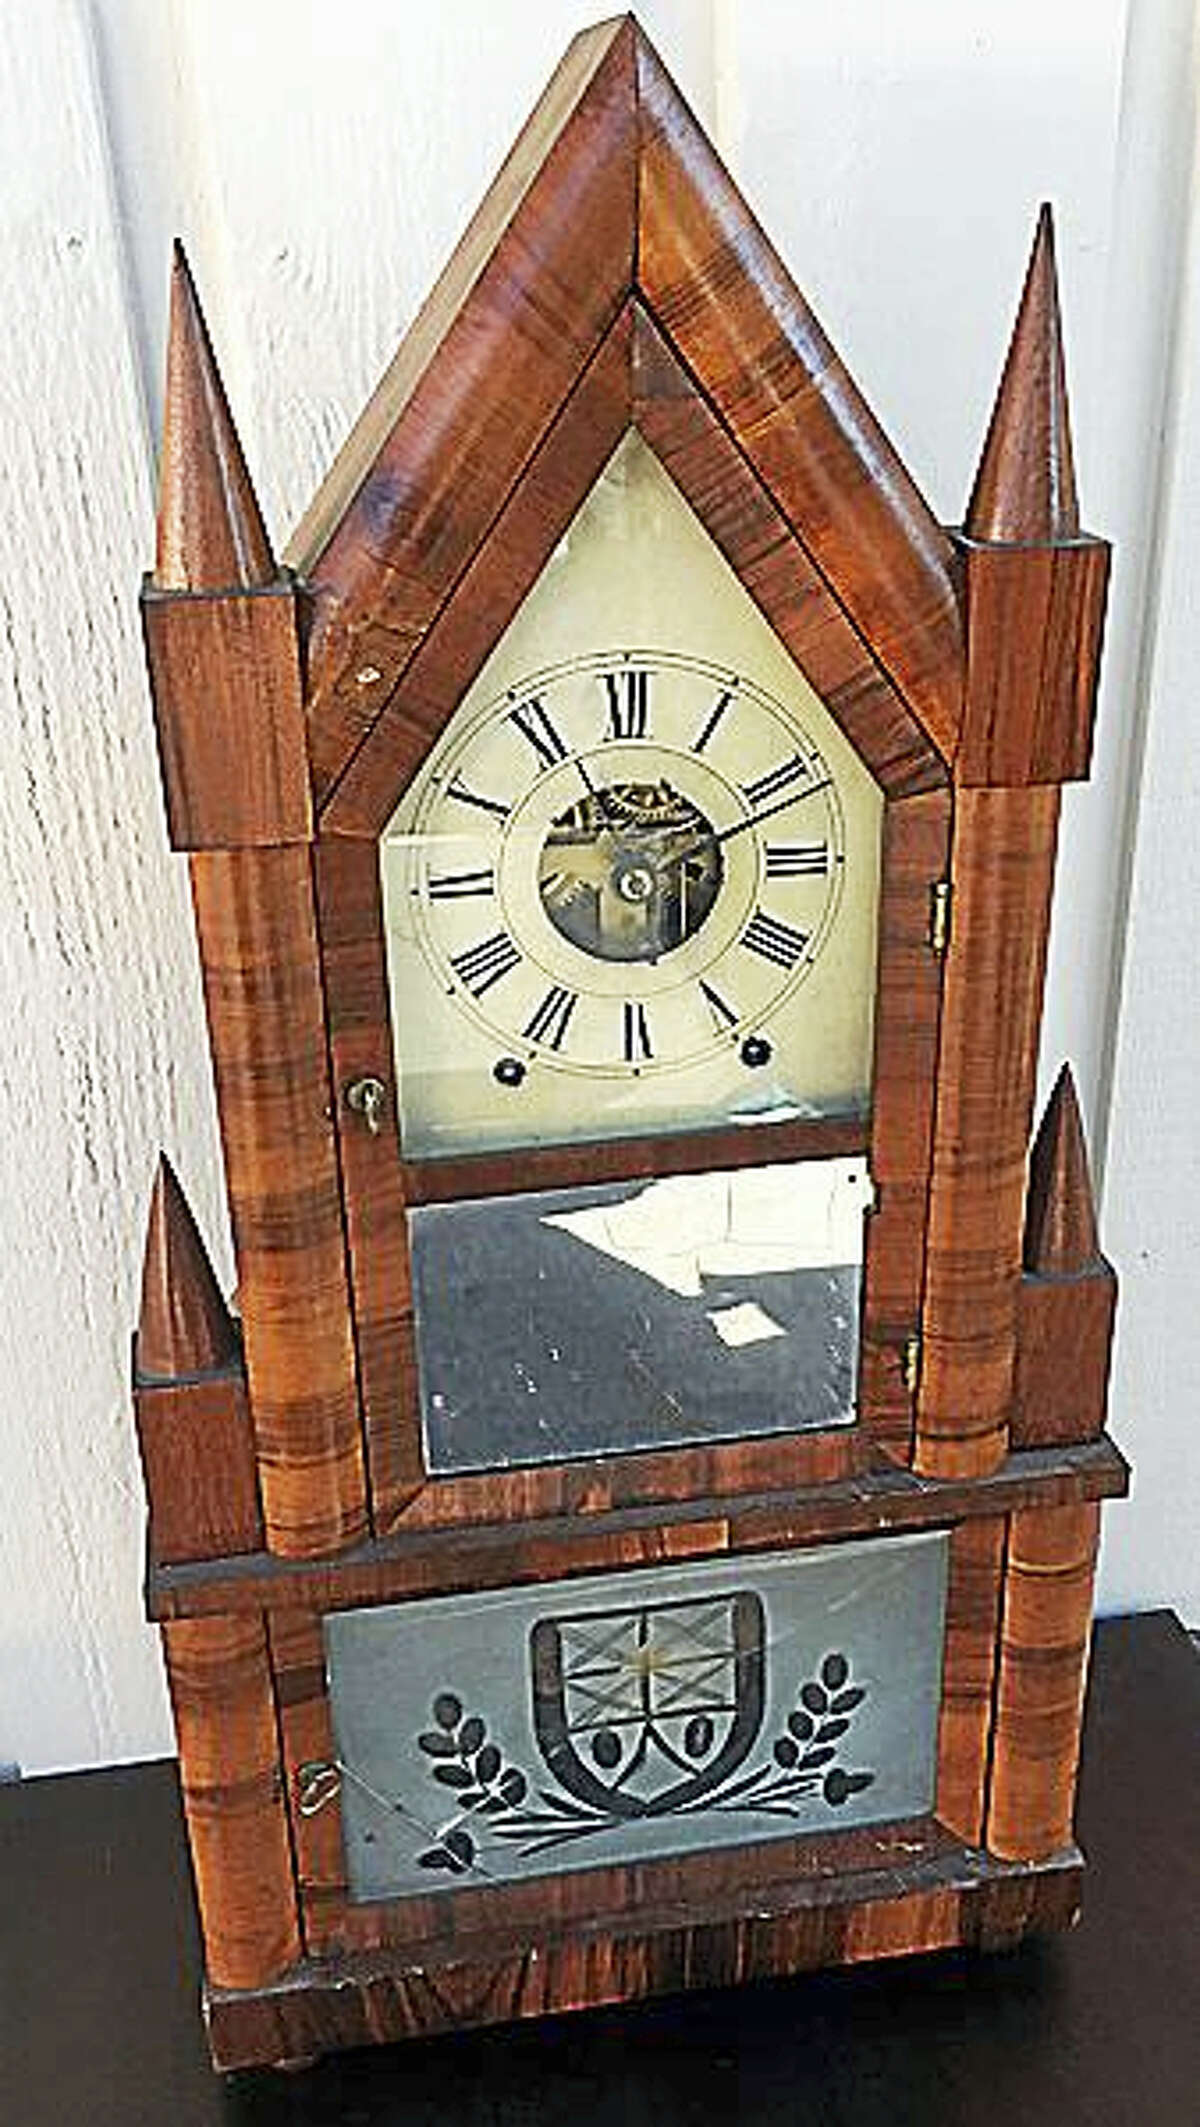 Contributed photo A double steeple clock, part of the many treasures to be found at Tim's Inc. auction Dec. 11.